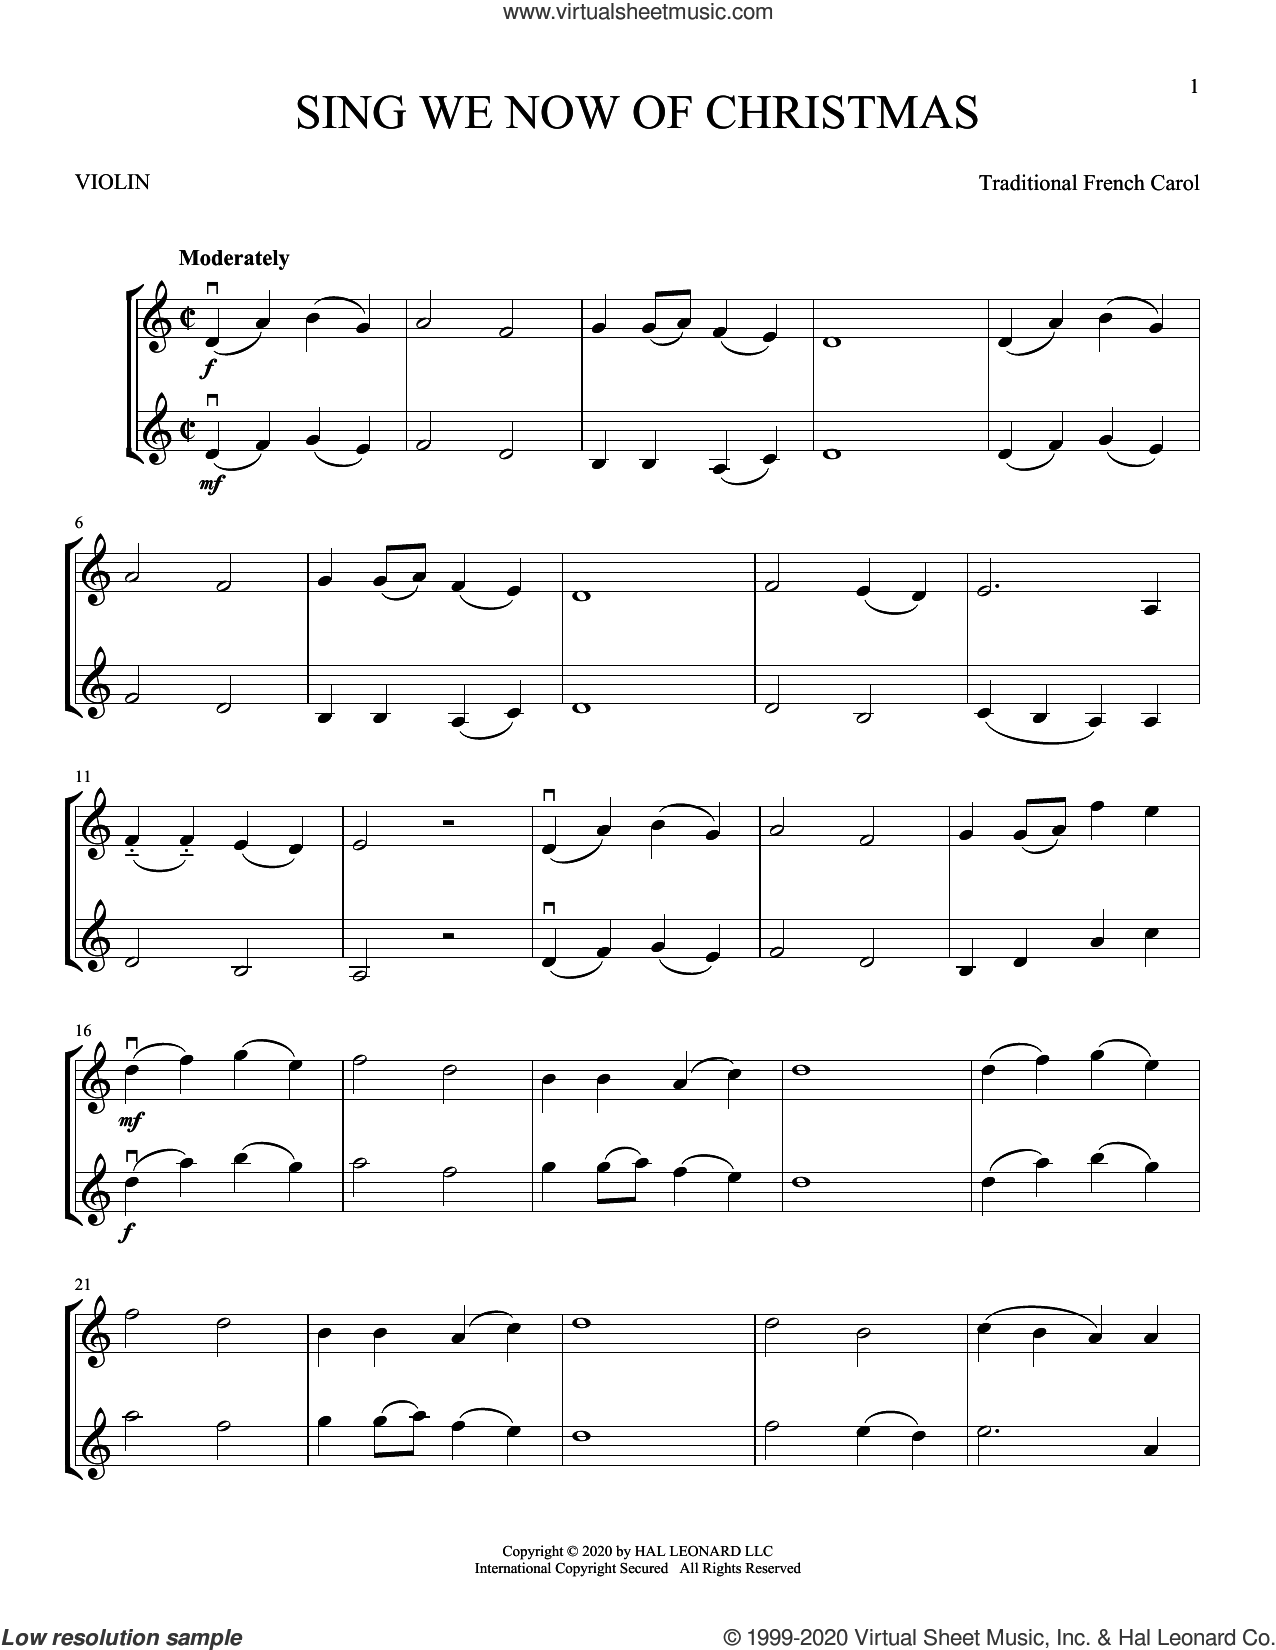 Sing We Now Of Christmas sheet music for two violins (duets, violin duets), intermediate skill level